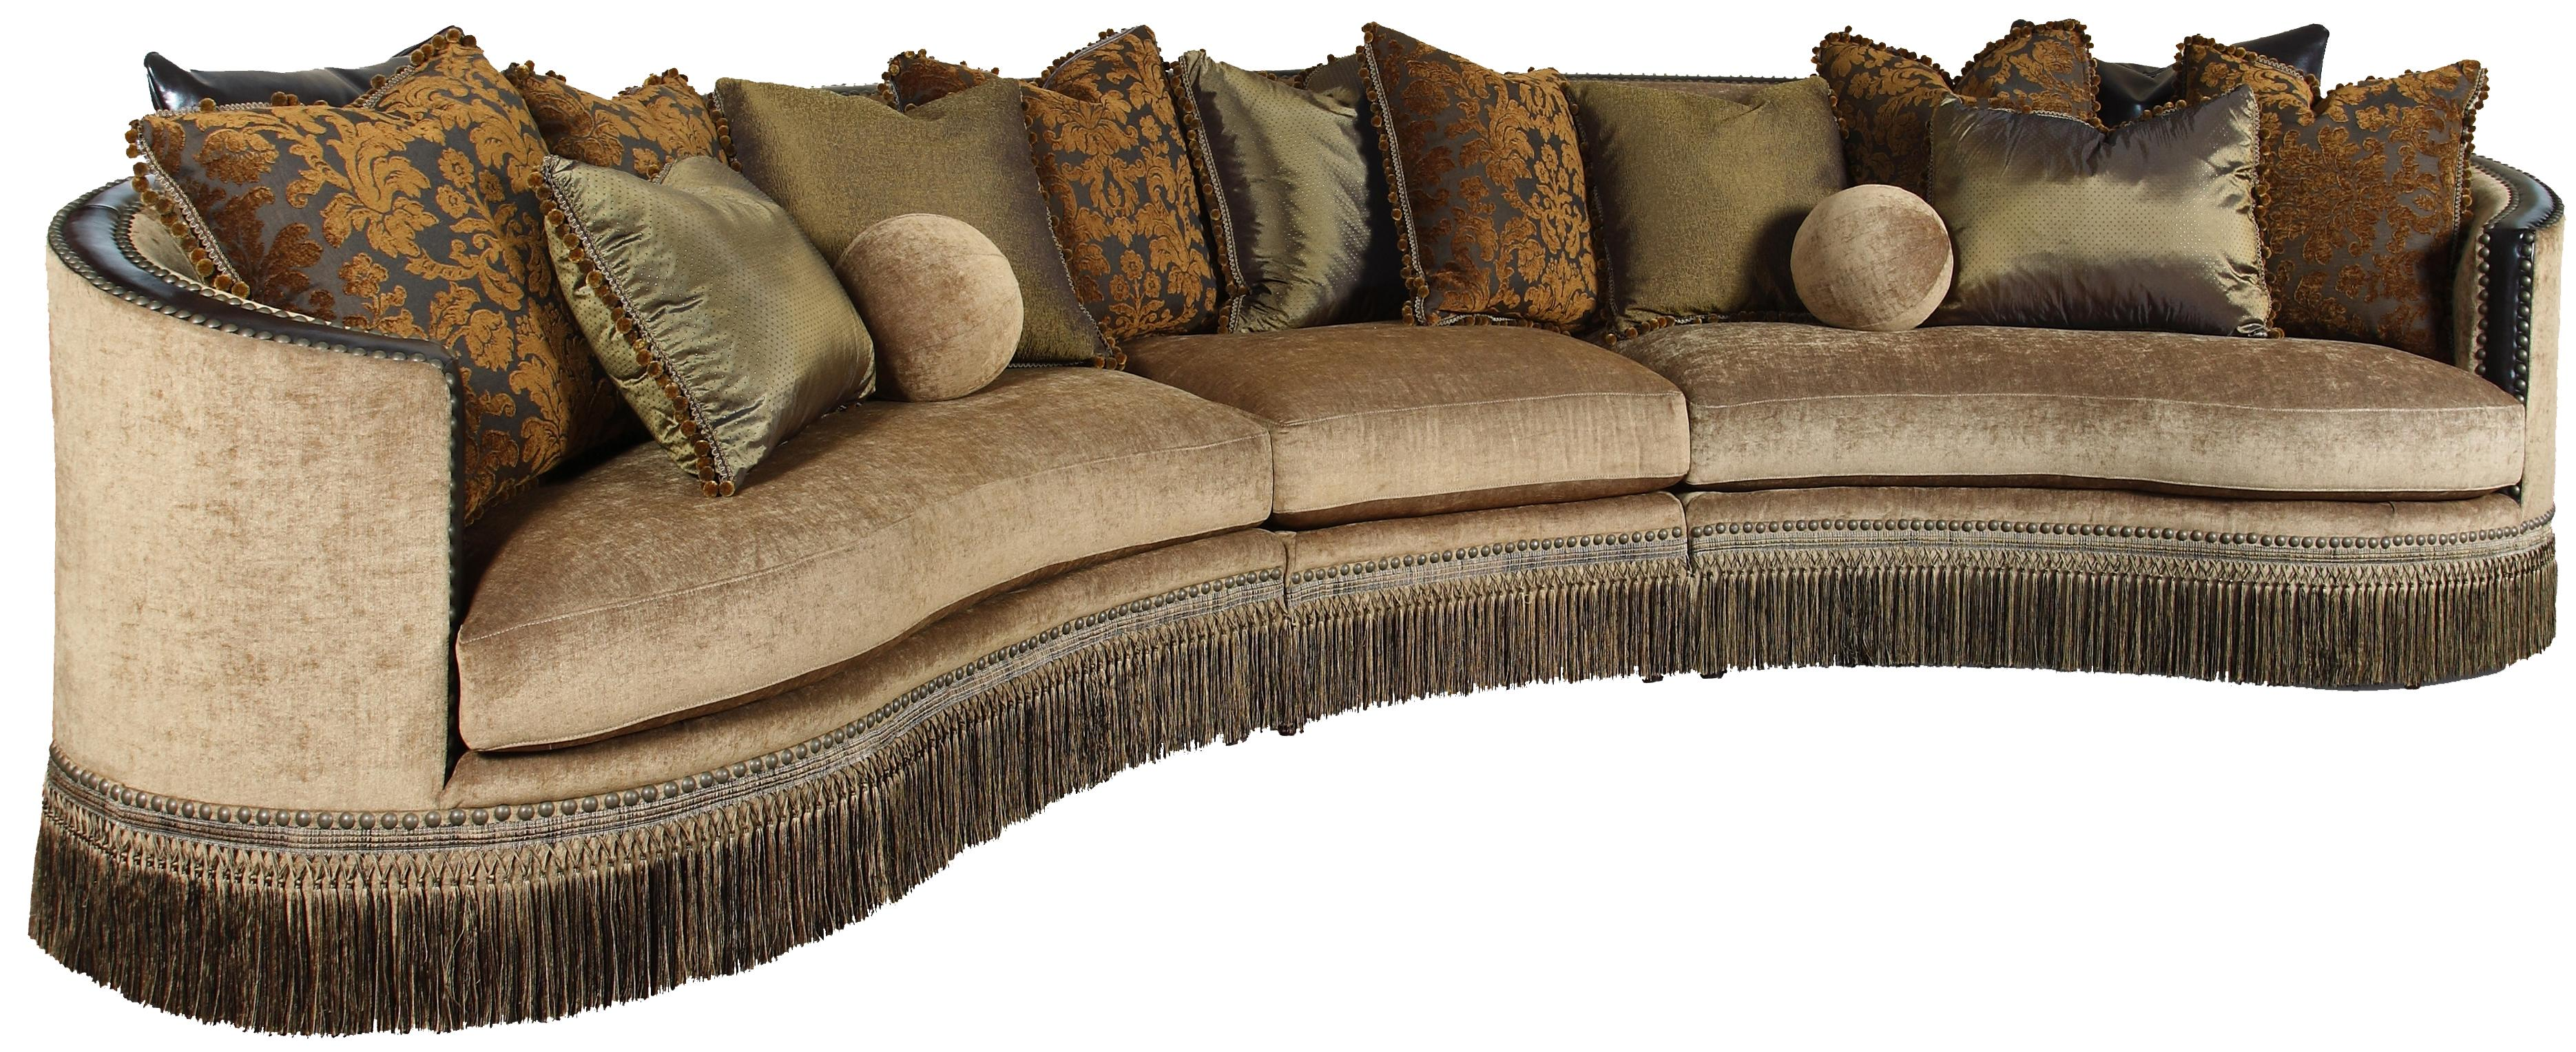 Rachlin Classics Whitney Traditional 3 Piece Sectional Sofa with